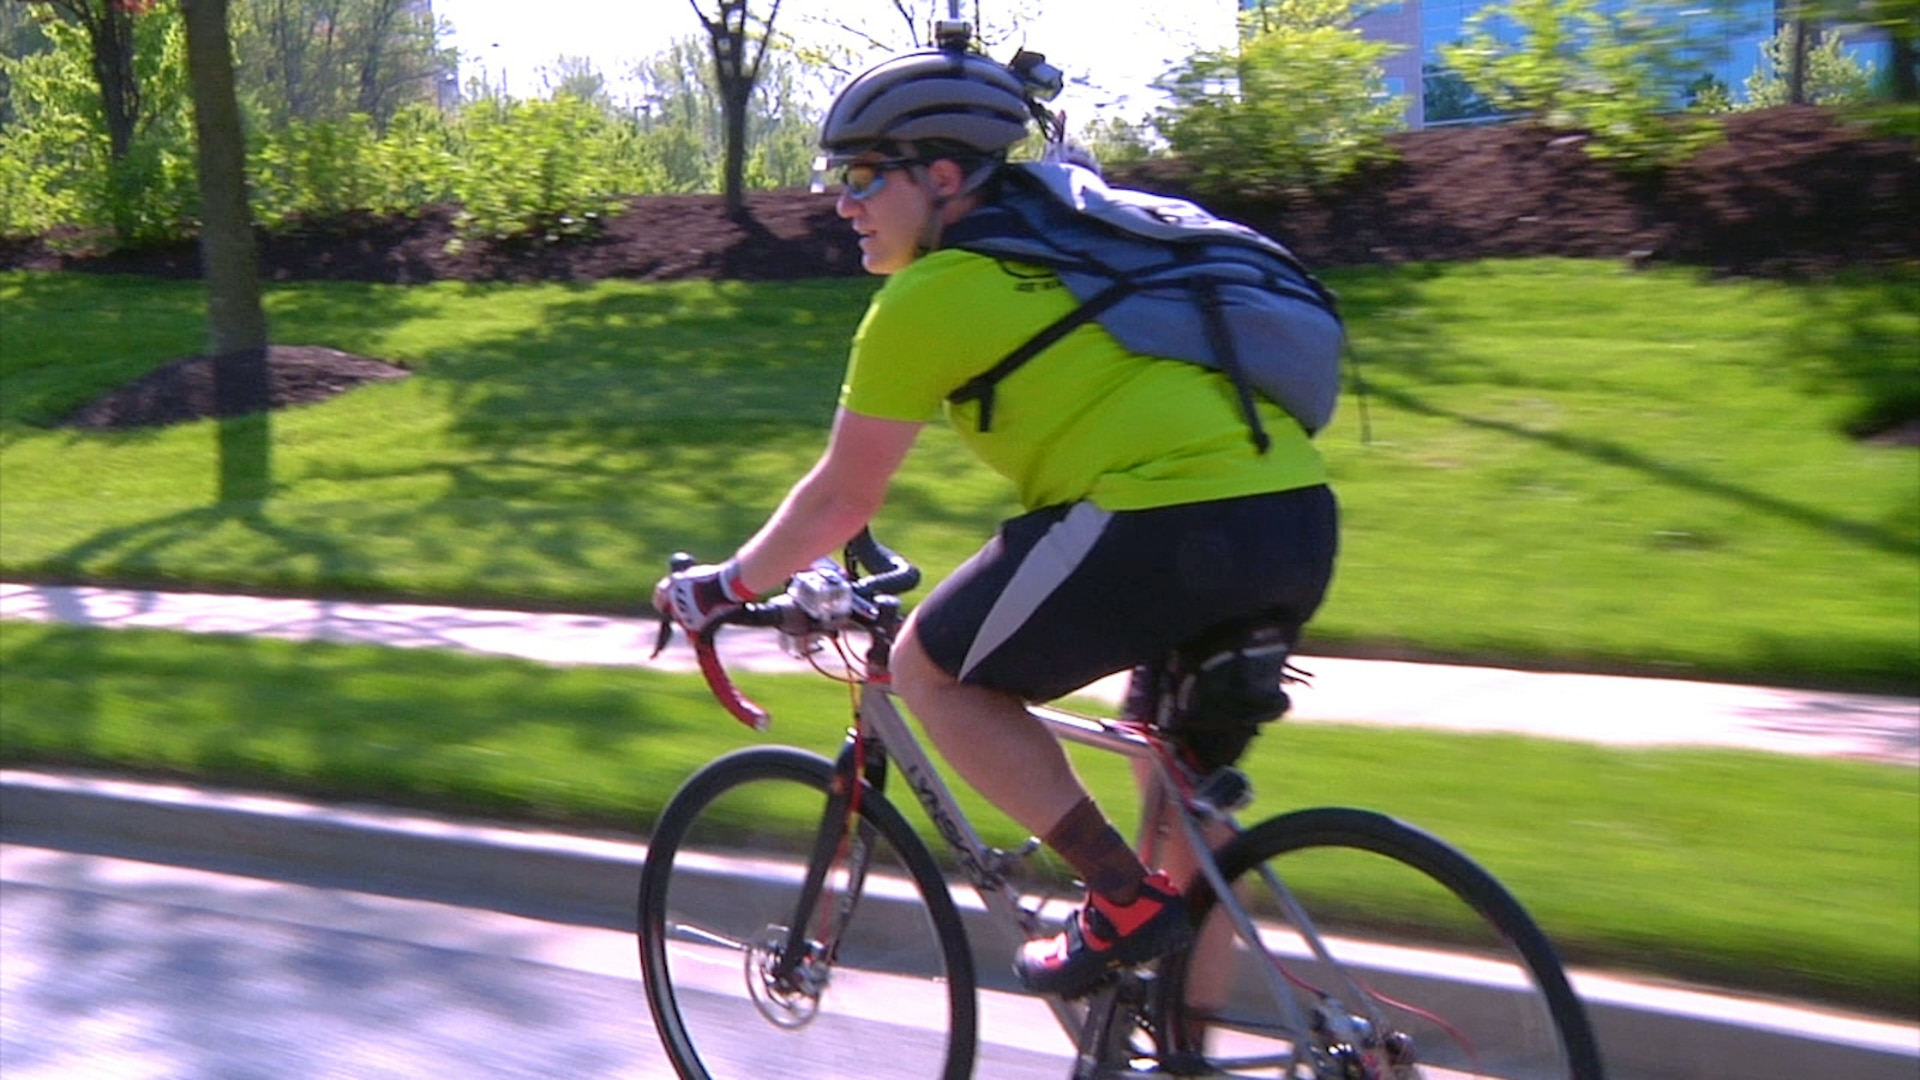 Cycling advocate and NSA mathematician Rino Sanchez bikes to work every day